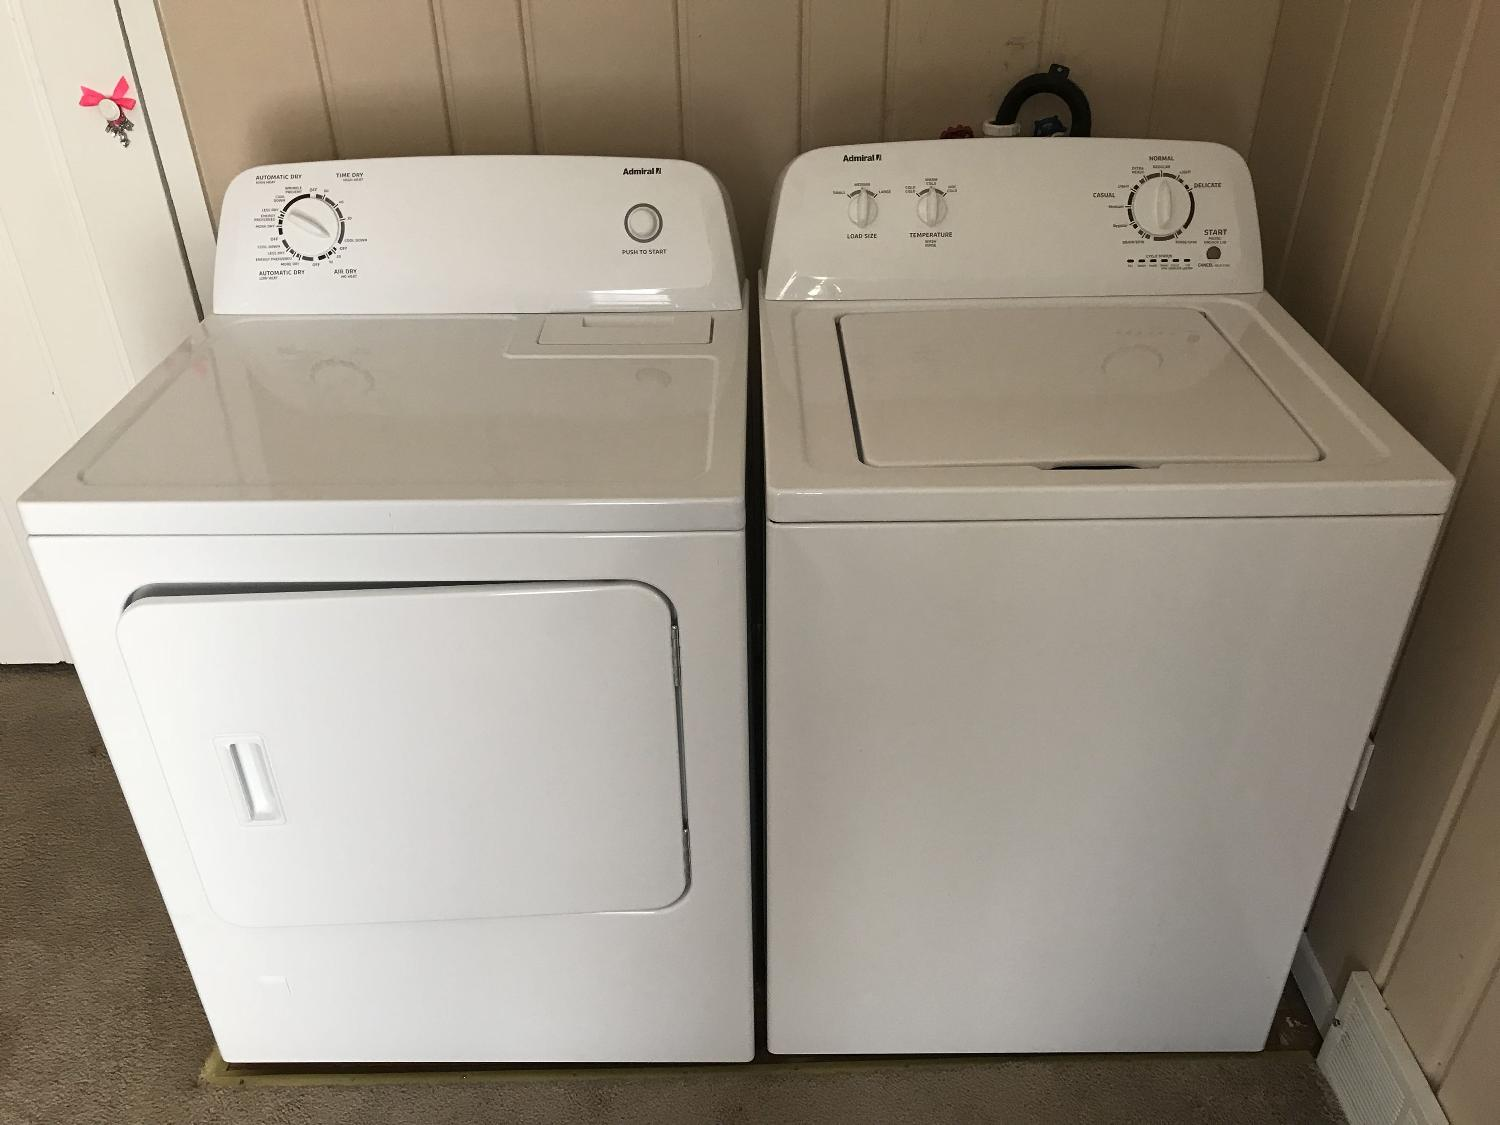 best new washer and dryer set for sale in rockford illinois for 2019. Black Bedroom Furniture Sets. Home Design Ideas